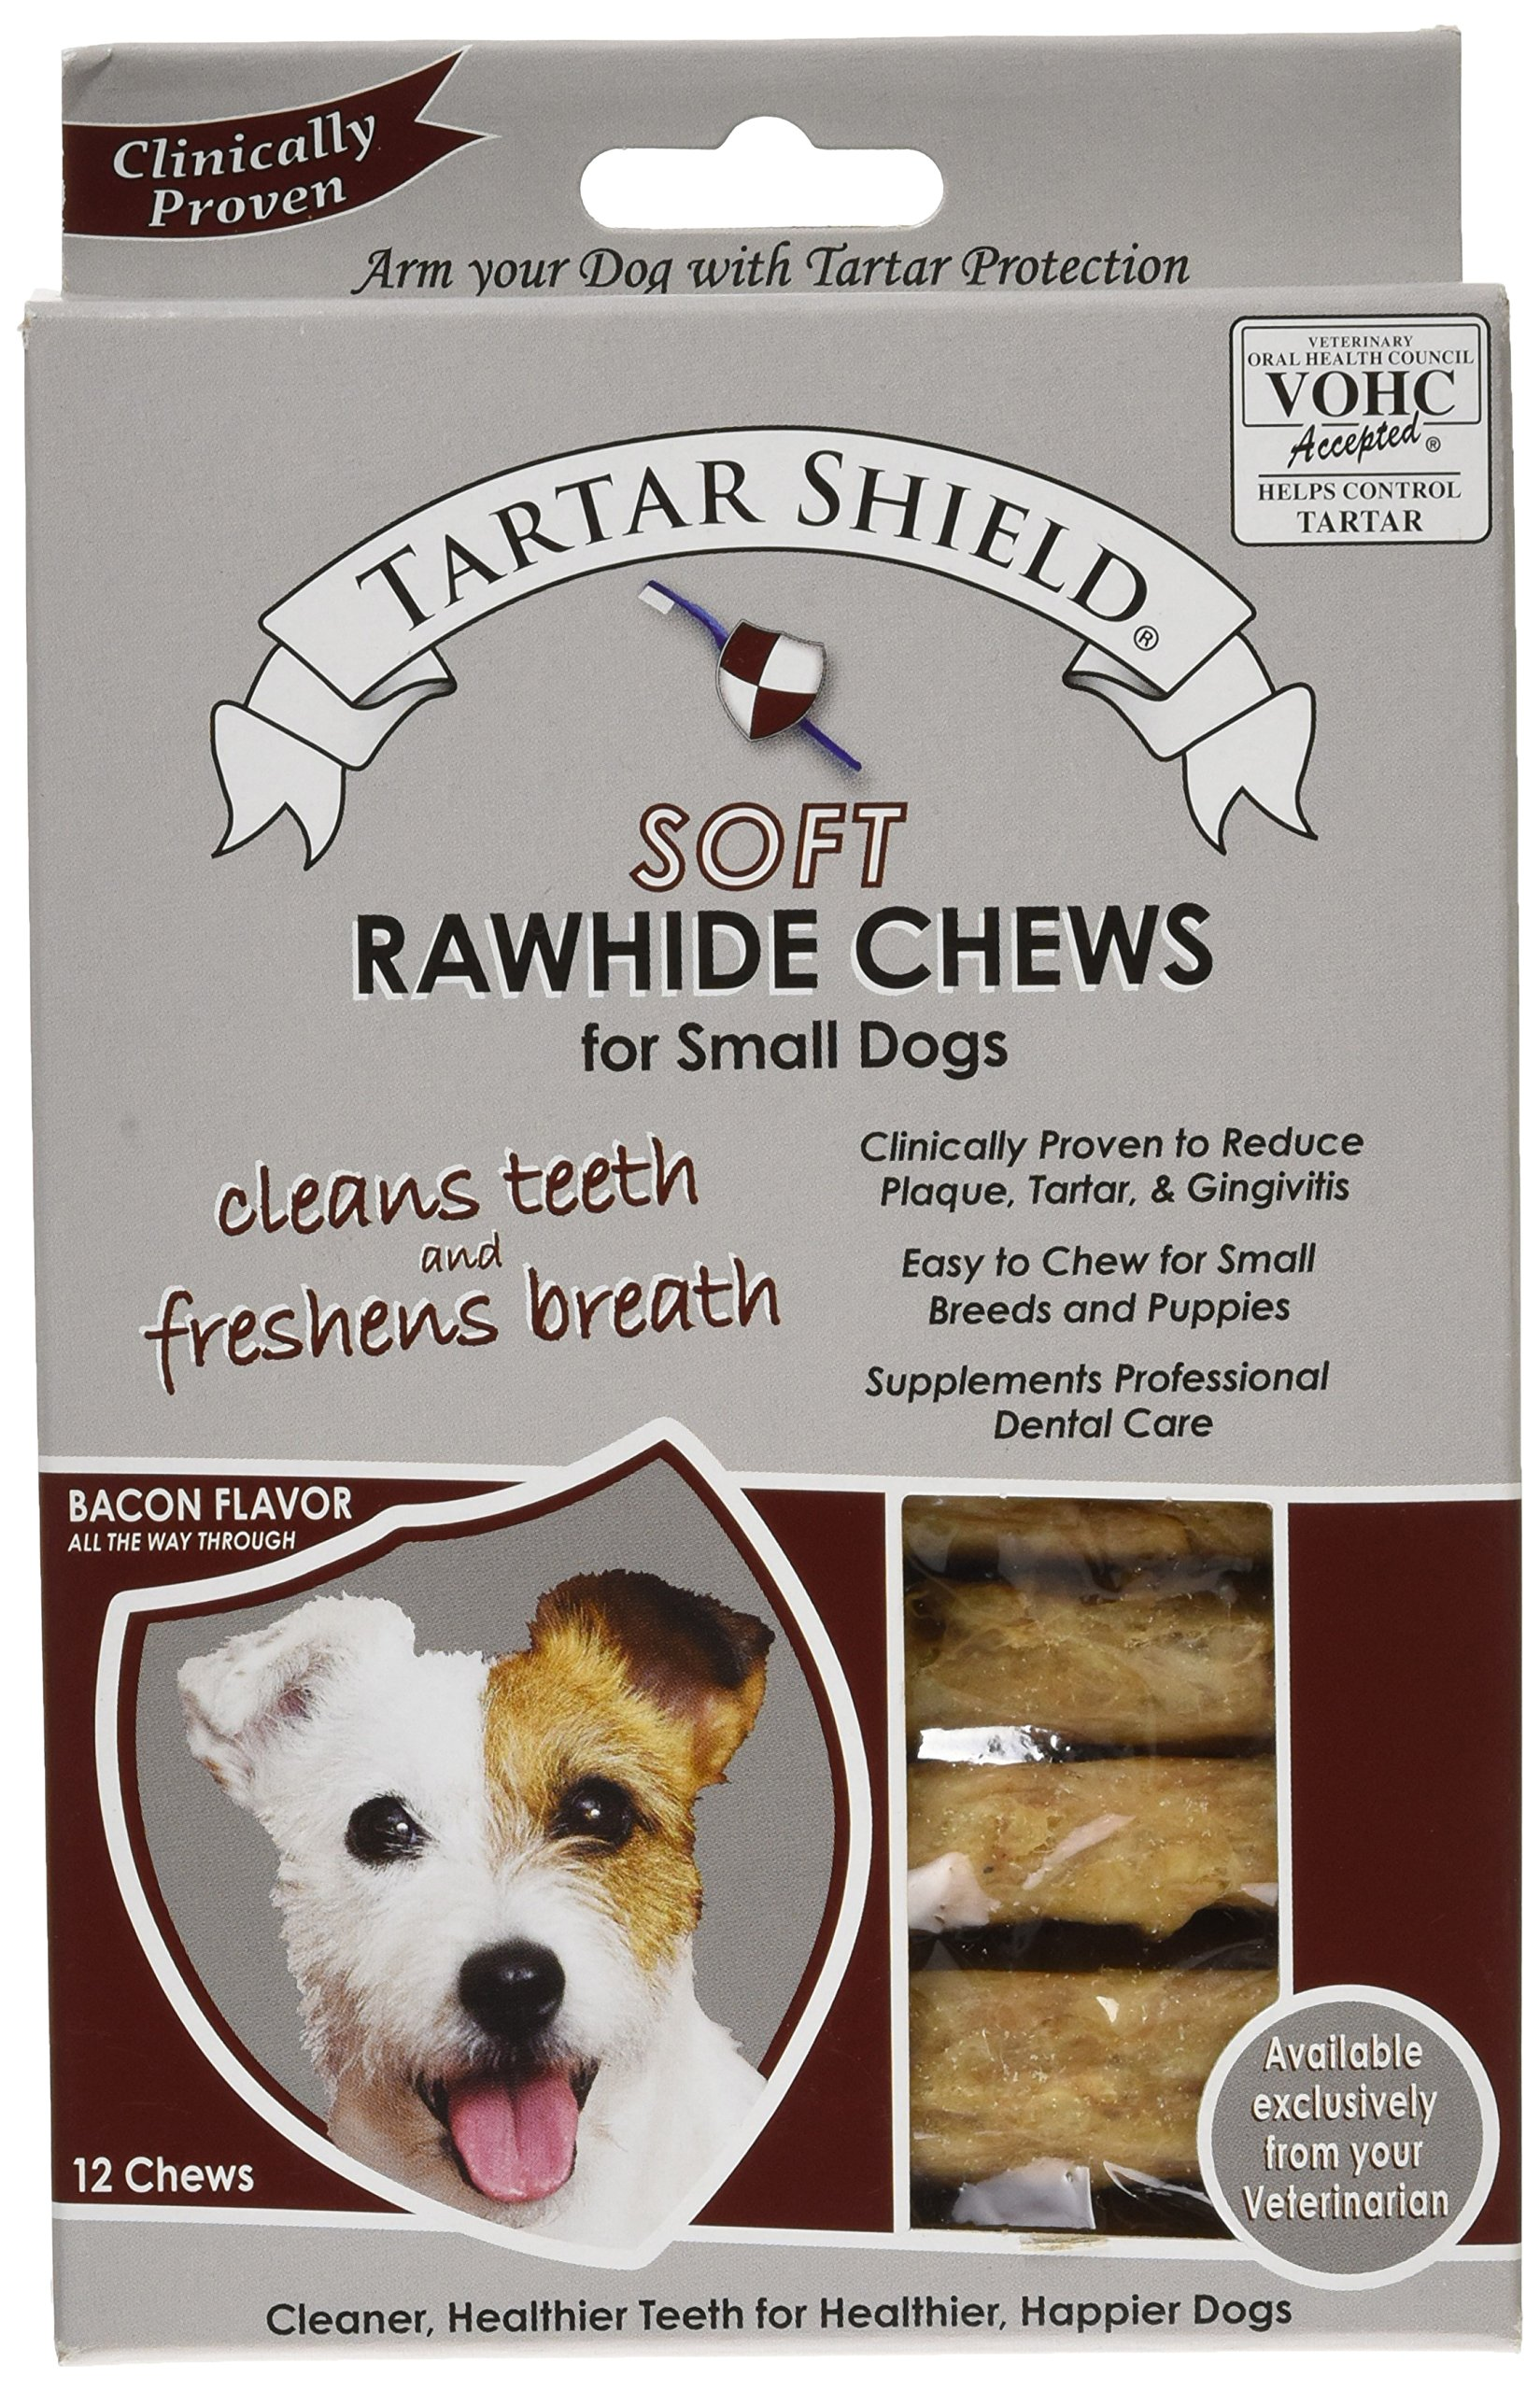 Tartar Shield Soft Rawhide Chews for Small Dogs